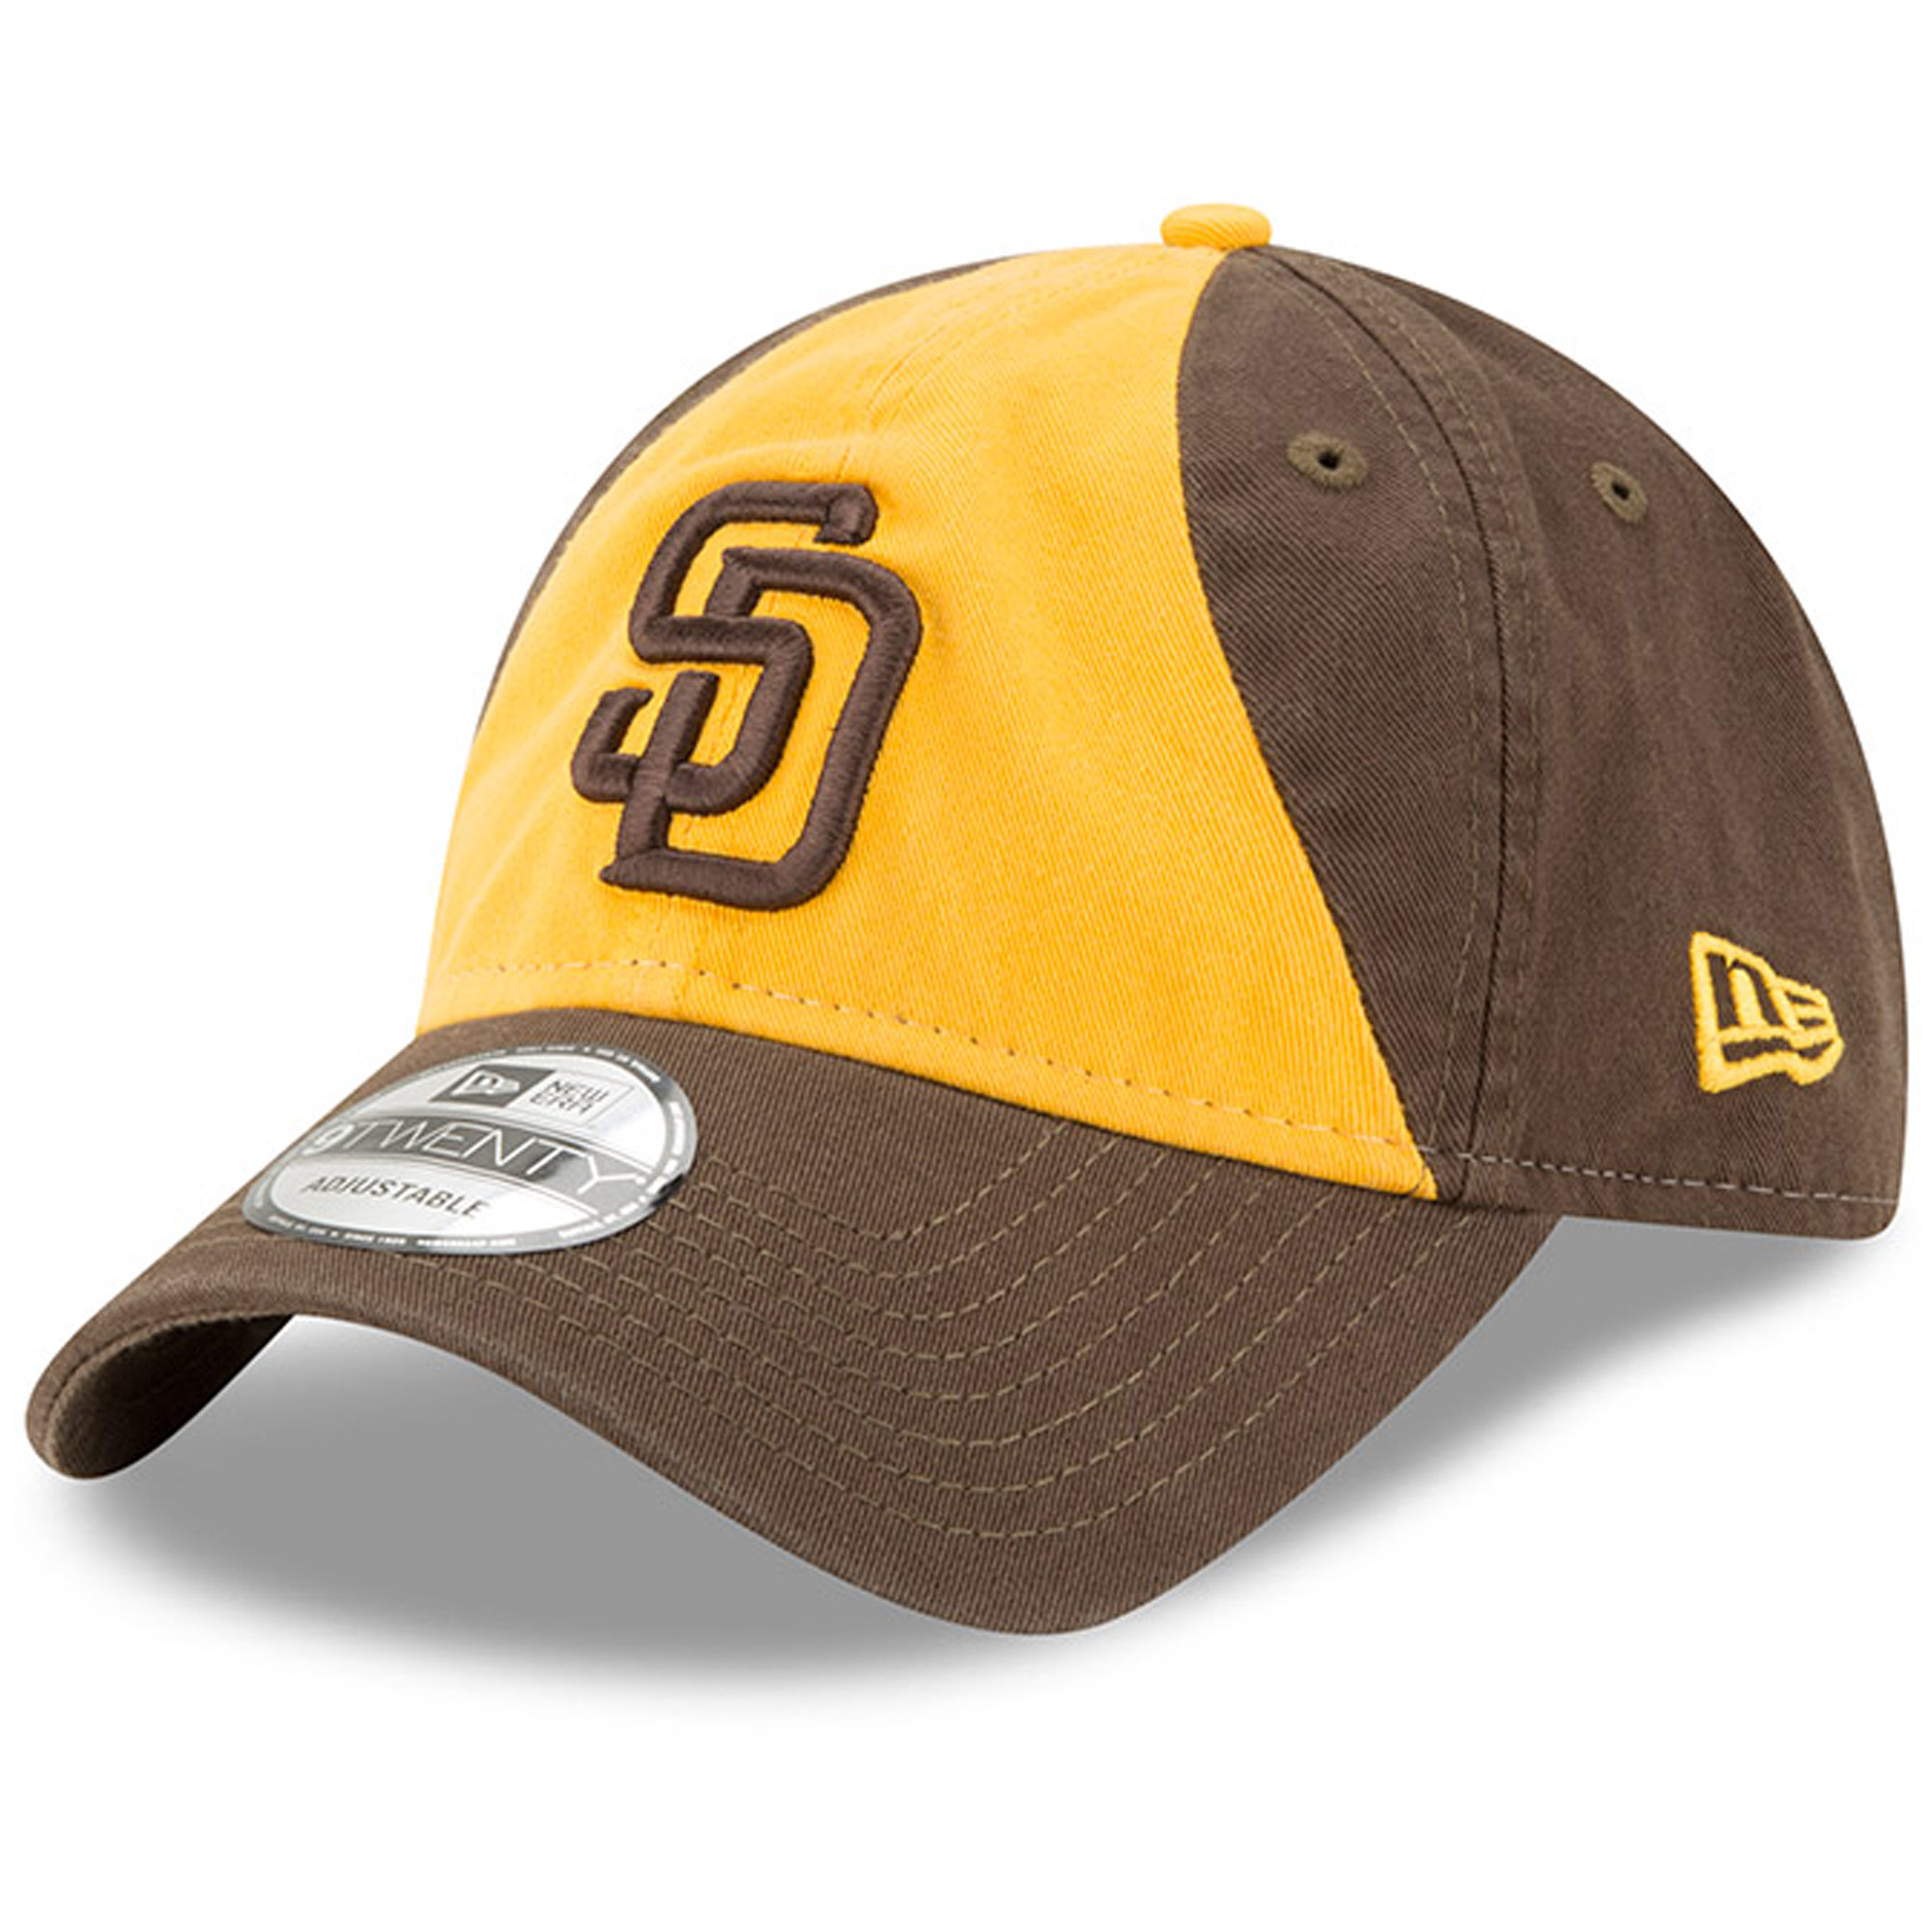 San Diego Padres New Era Alternate 2 Replica Core Classic 9TWENTY Adjustable Hat - Gold/Brown - OSFA